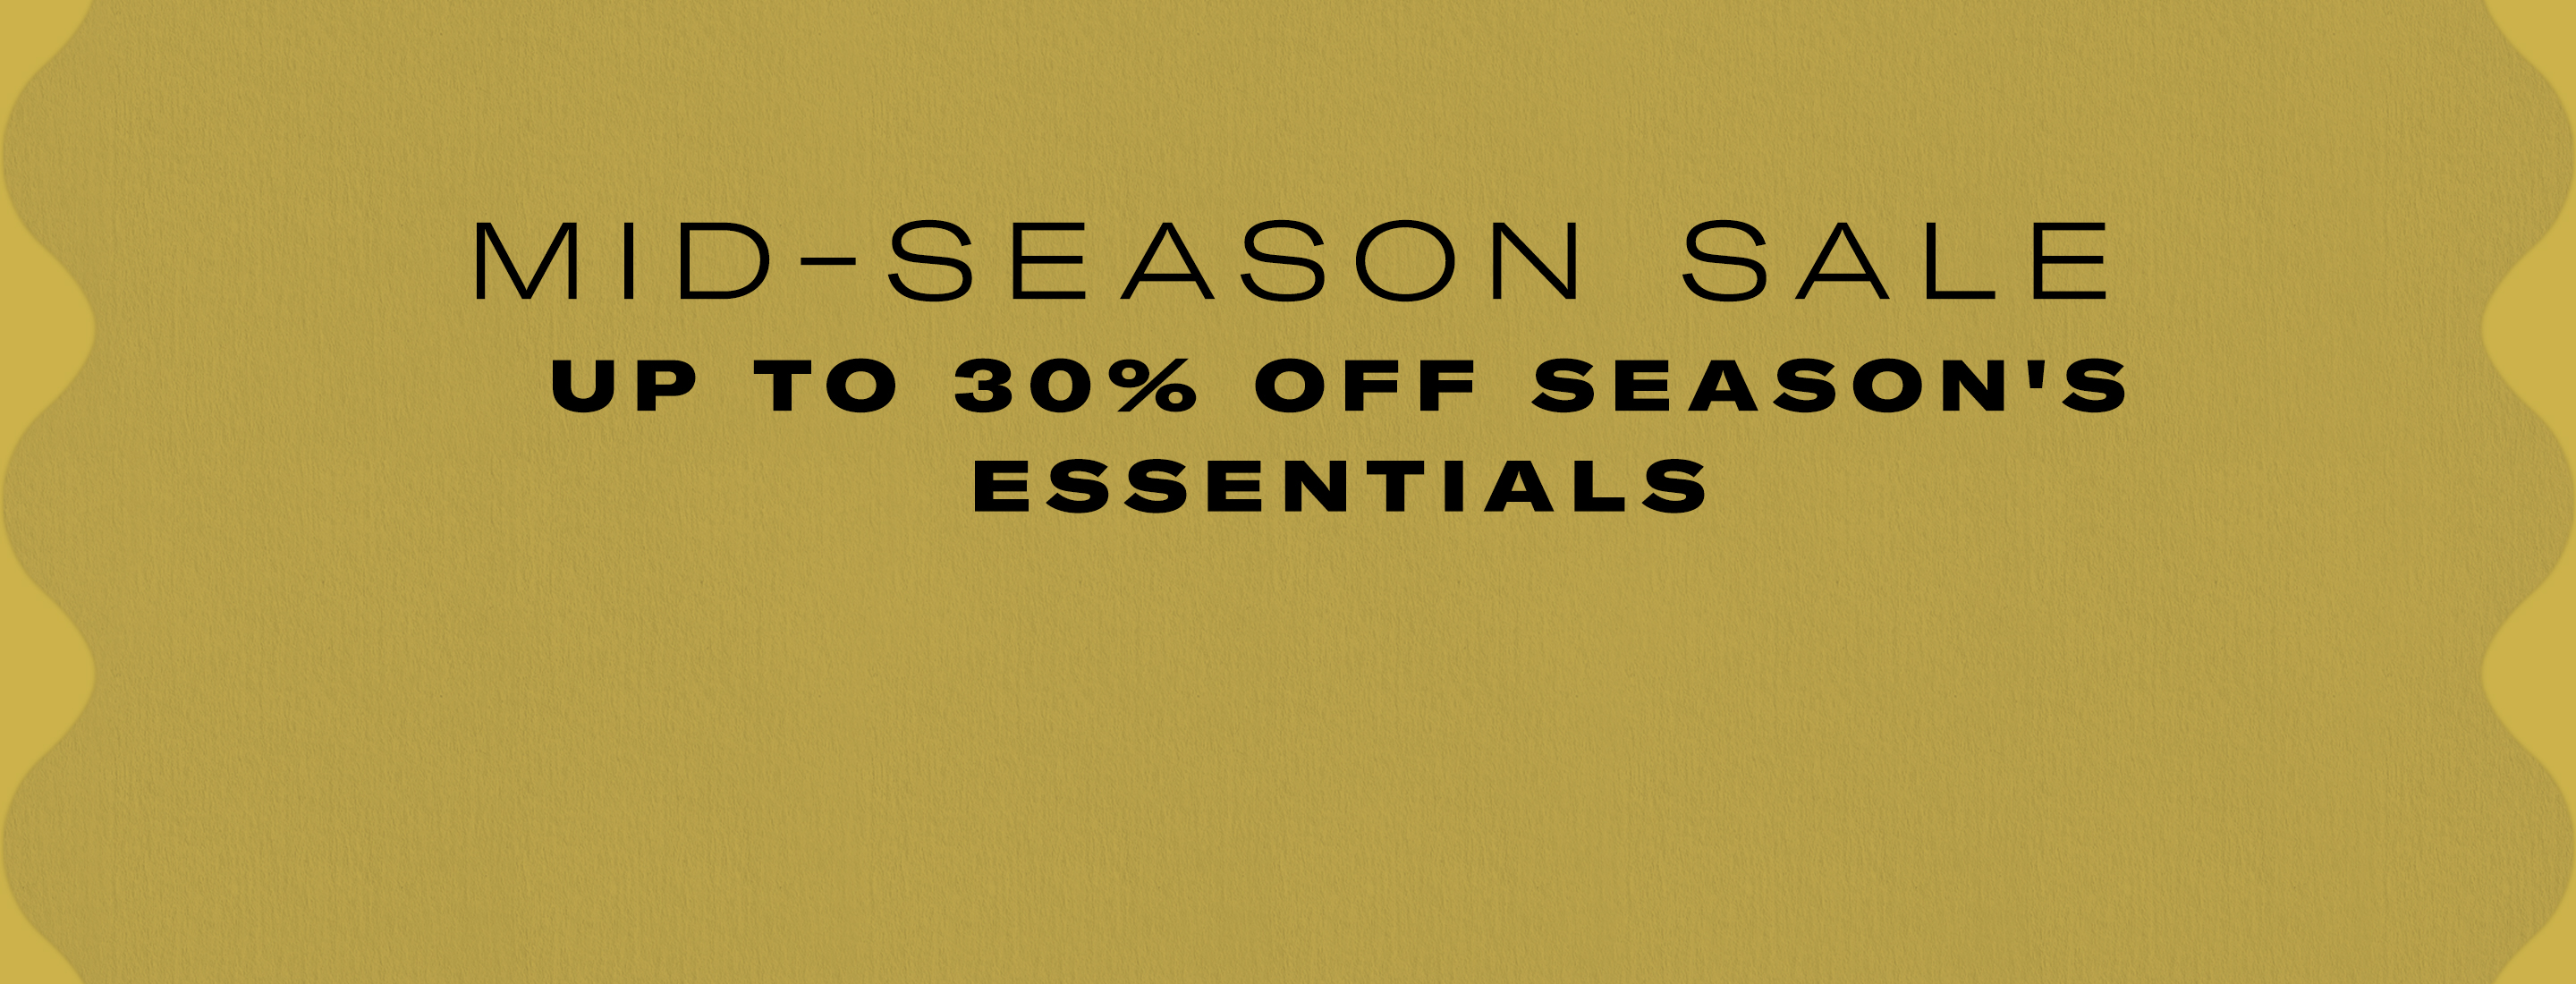 Mid season sale 30% off